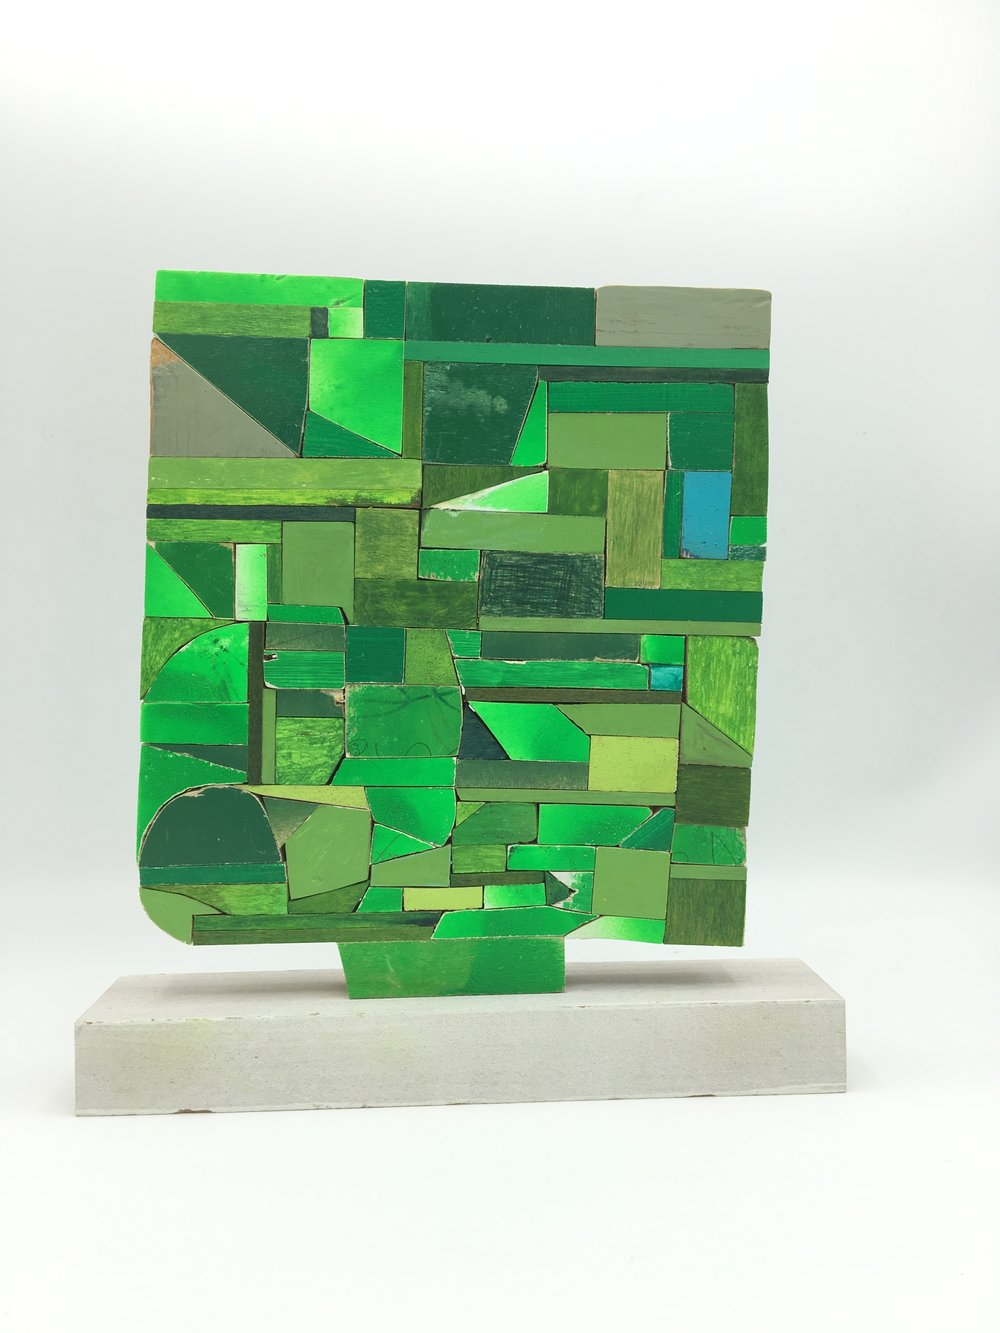 Green One , 2016   [private collection Boston, MA]  Wood, Paint, Colored Pencil, Glue   10 x 9 x 2 in.